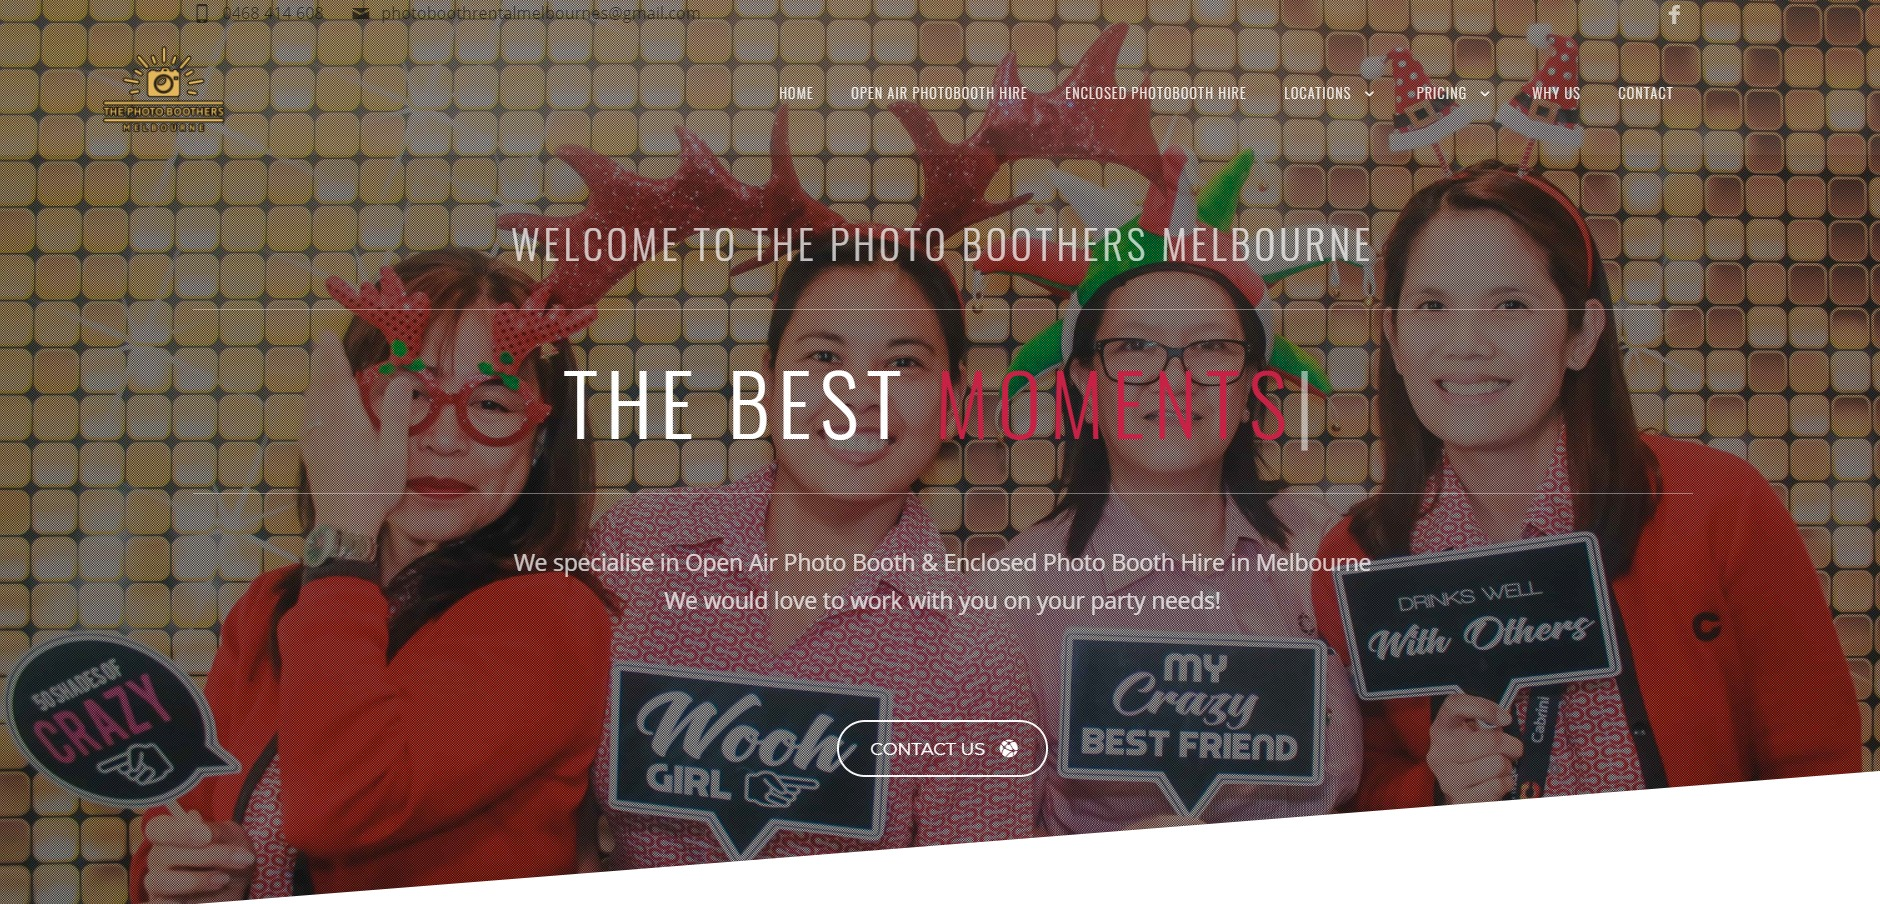 The Photoboothers Melbourne